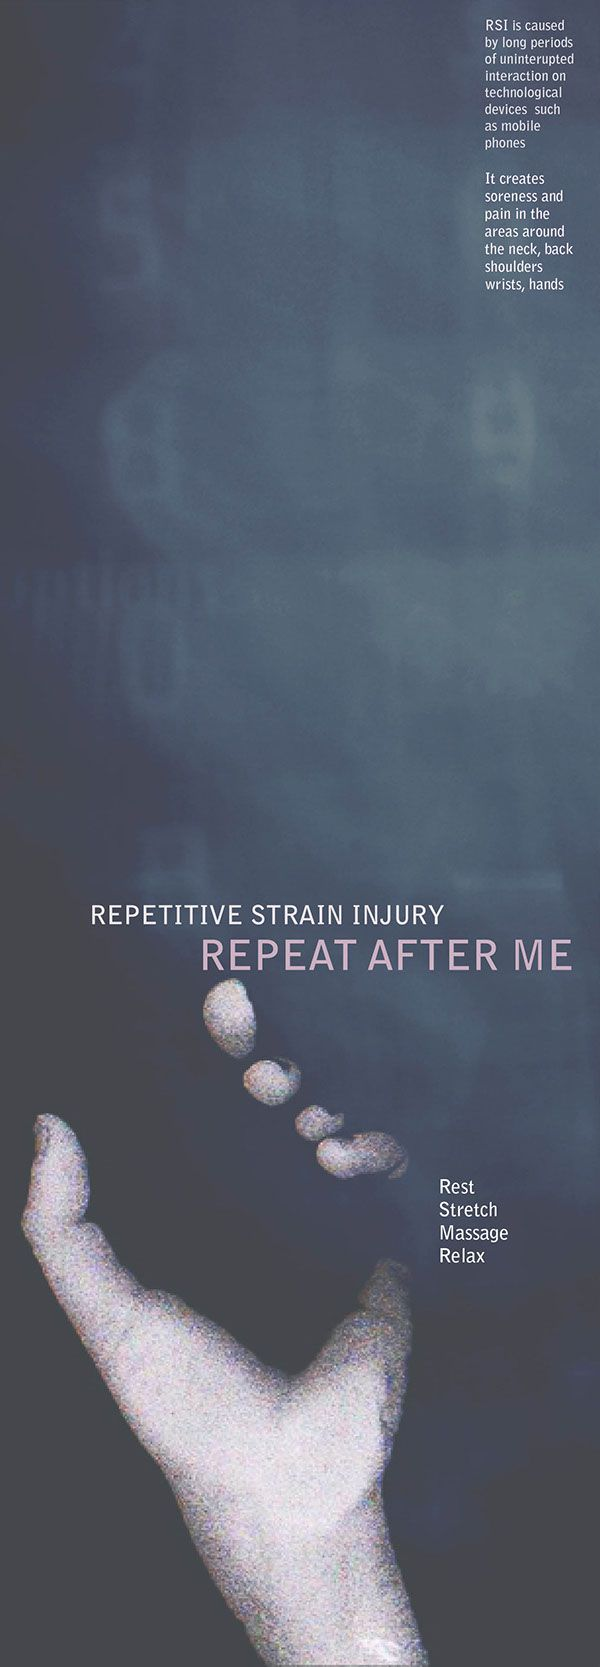 Repetitive Strain Injury on Behance